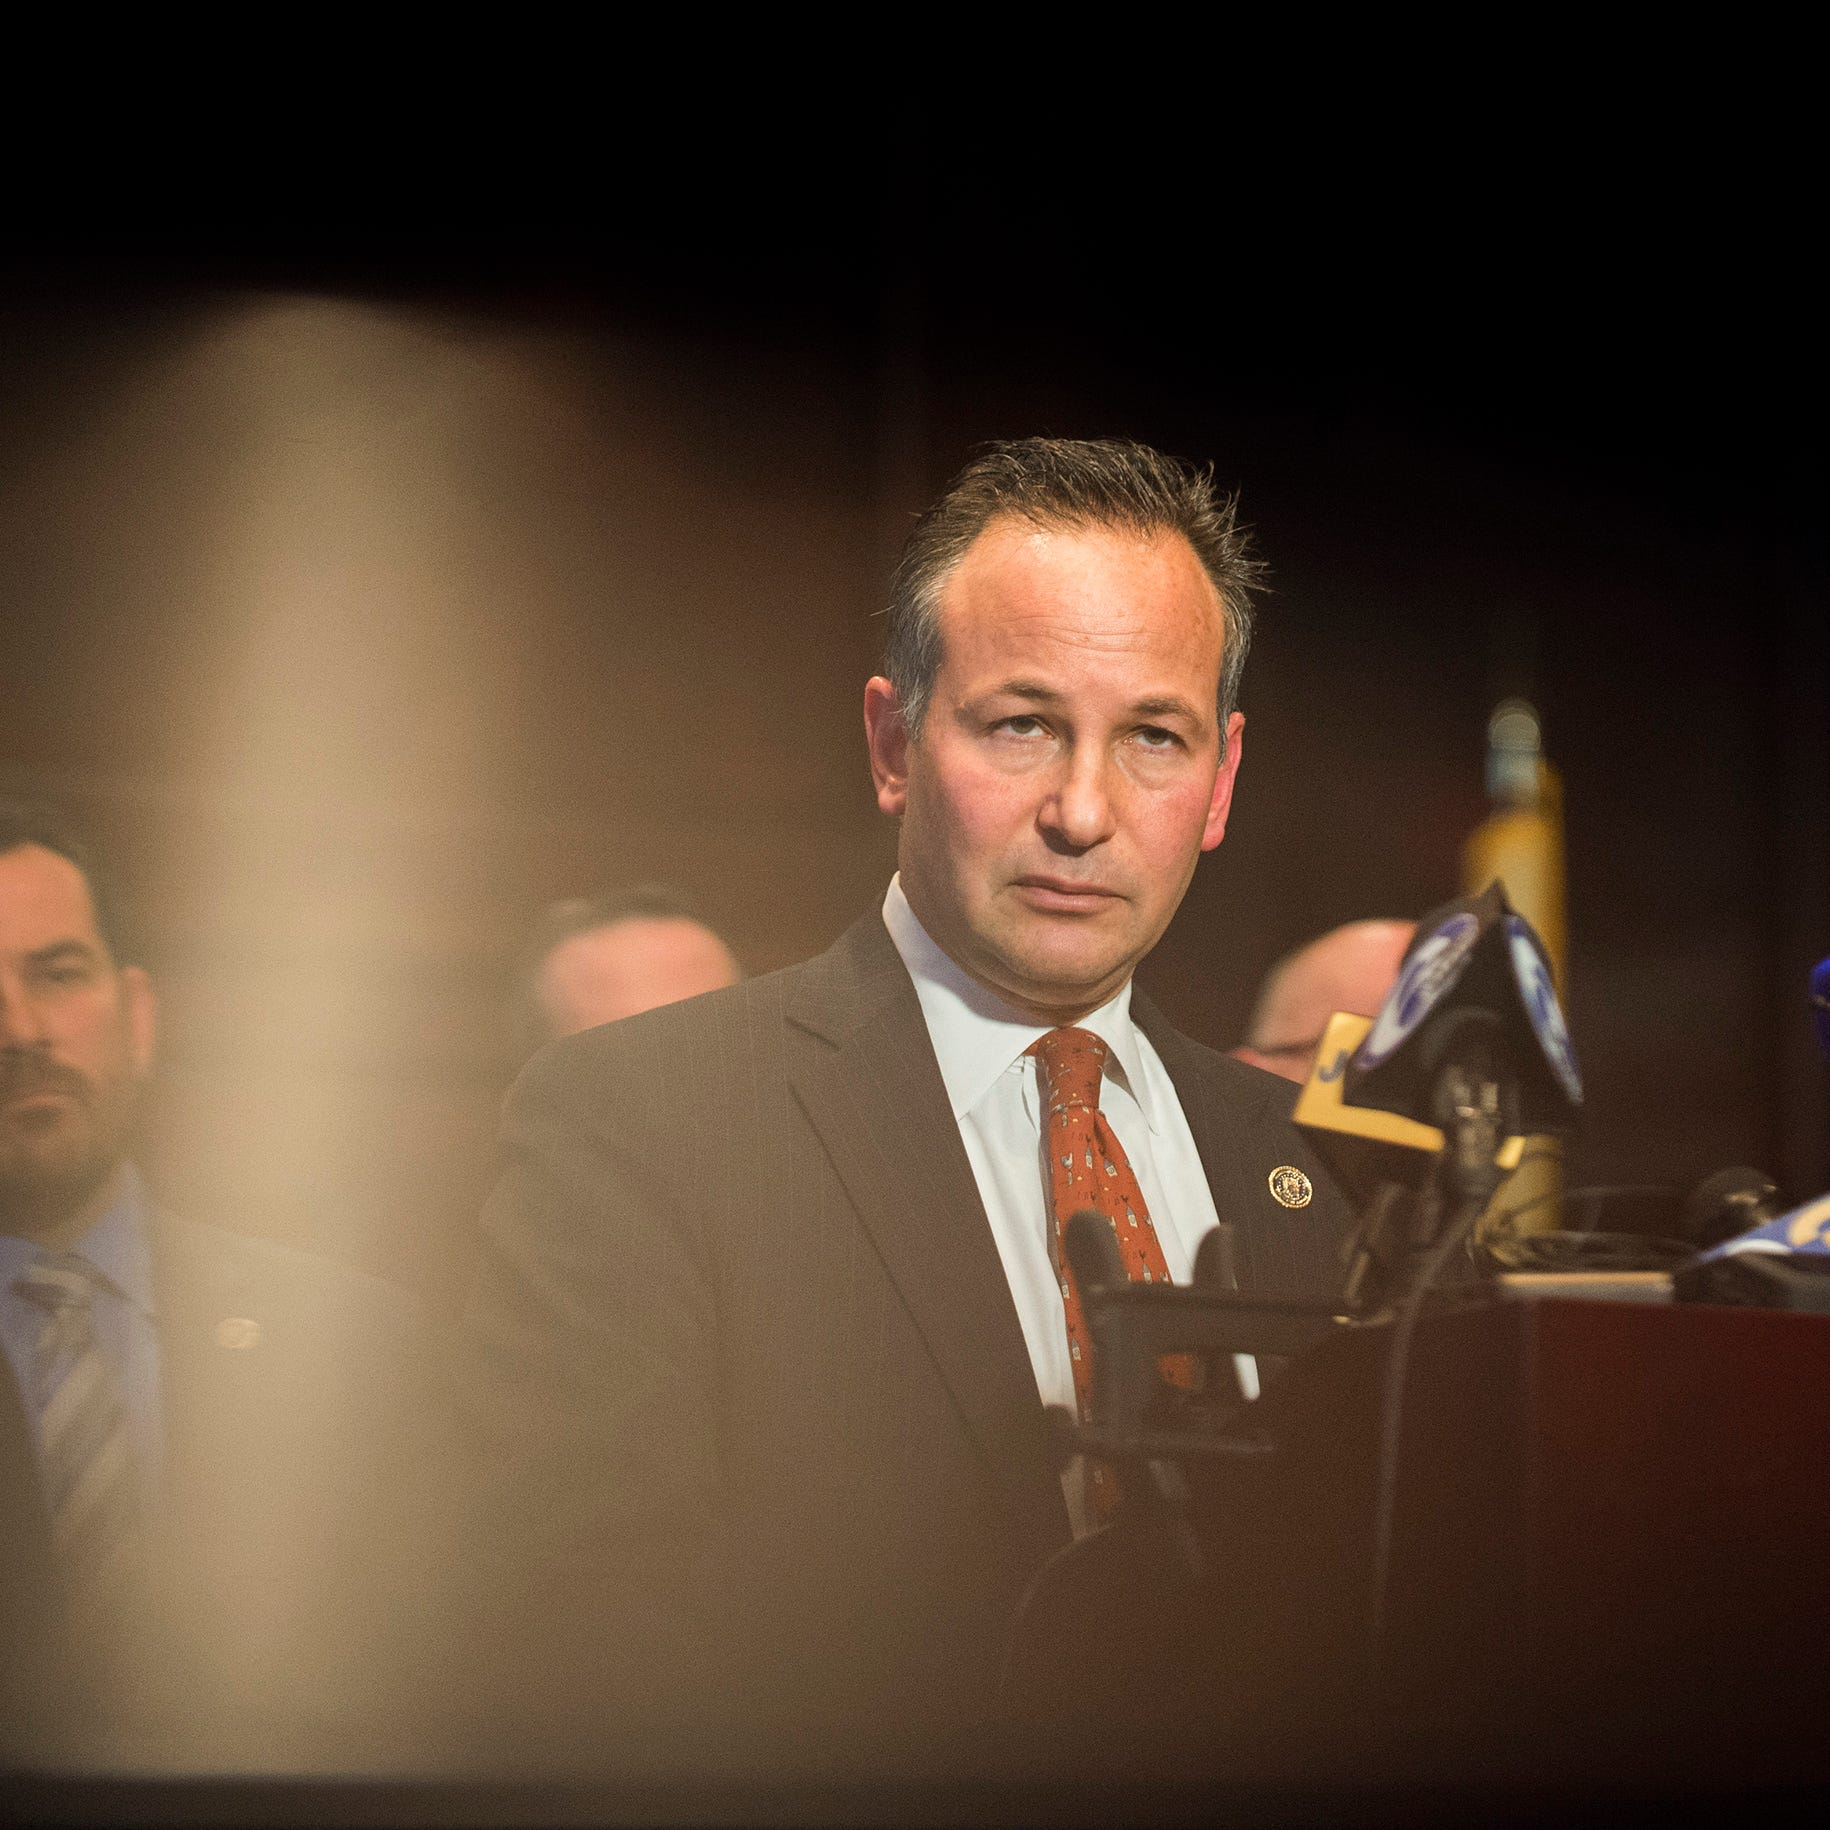 Burlington County Prosecutor Scott Coffina addresses media during a press conference regarding the three individuals charged in a conspiracy to defraud GoFundMe contributors Thursday, Nov. 15, 2018 in Mount Holly, N.J.